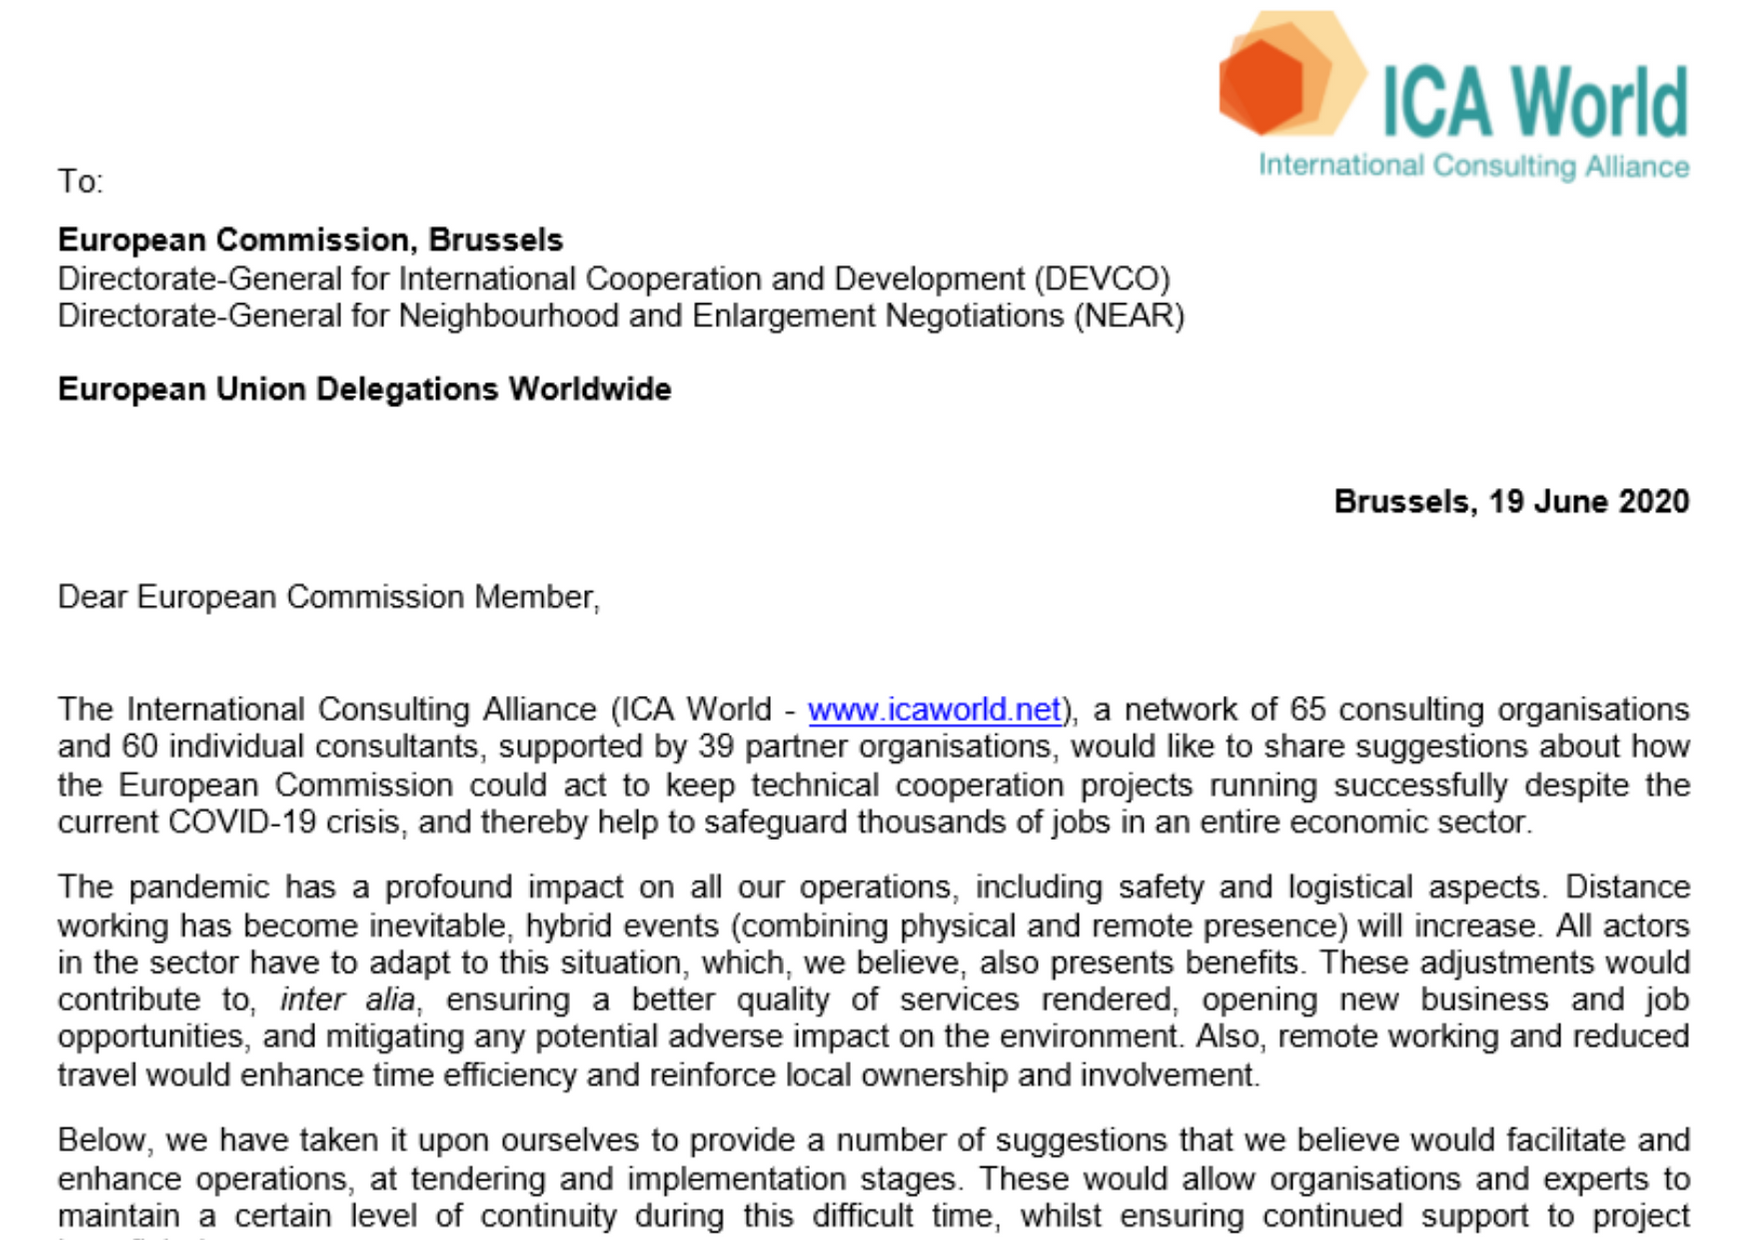 ICA World Letter to the European Commission and European Union Delegations in relation to the COVID-19 Crisis